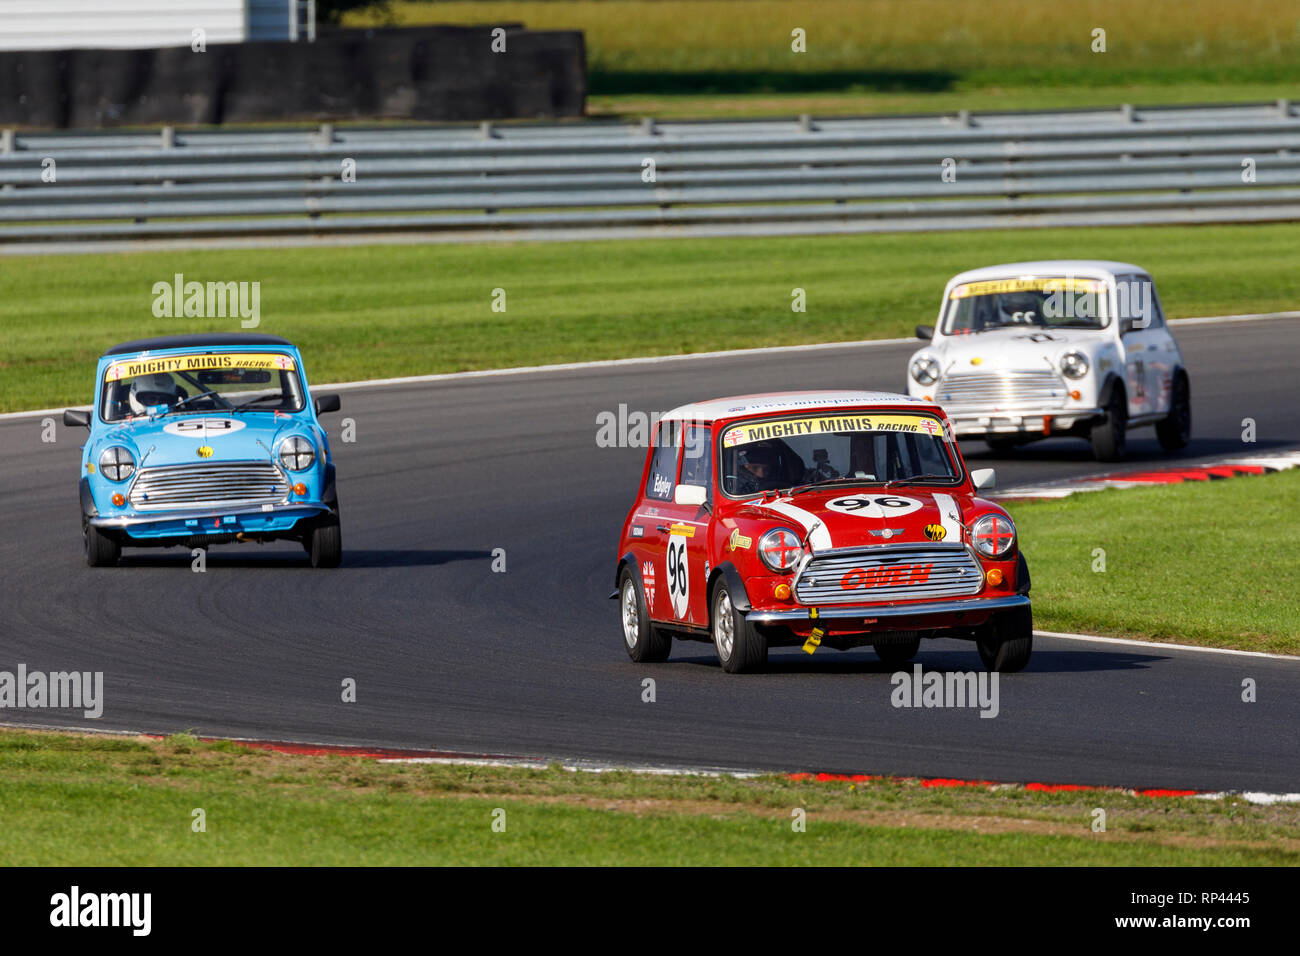 Owen Edgley in his Mighty Minis Championship race entrant at Snetterton 2018, Norfolk, UK. Stock Photo